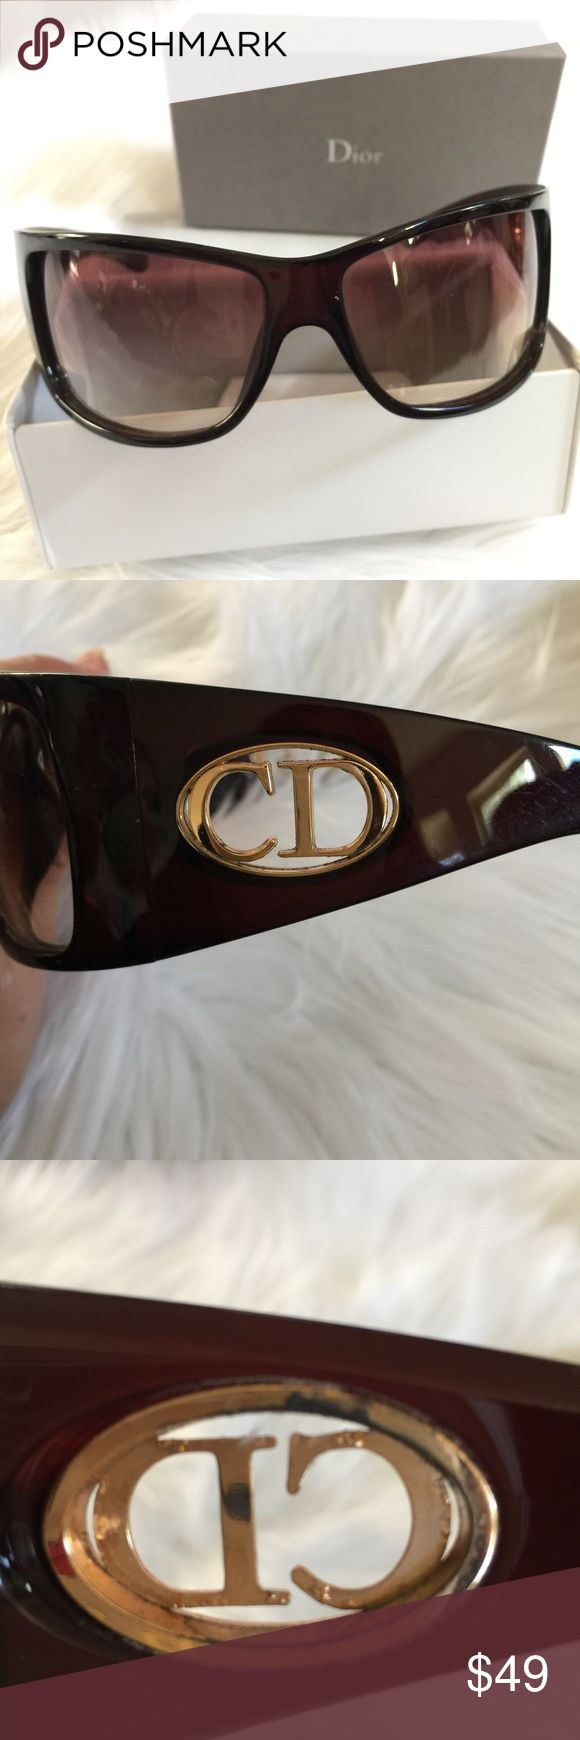 Christian Dior Brown Shield Sunglasses Gently used Authentic Christian Dior Brown Shoeld Sunglasses. Minor Scratches from normal use. Please note pictures for more details. Christian Dior Accessories Sunglasses